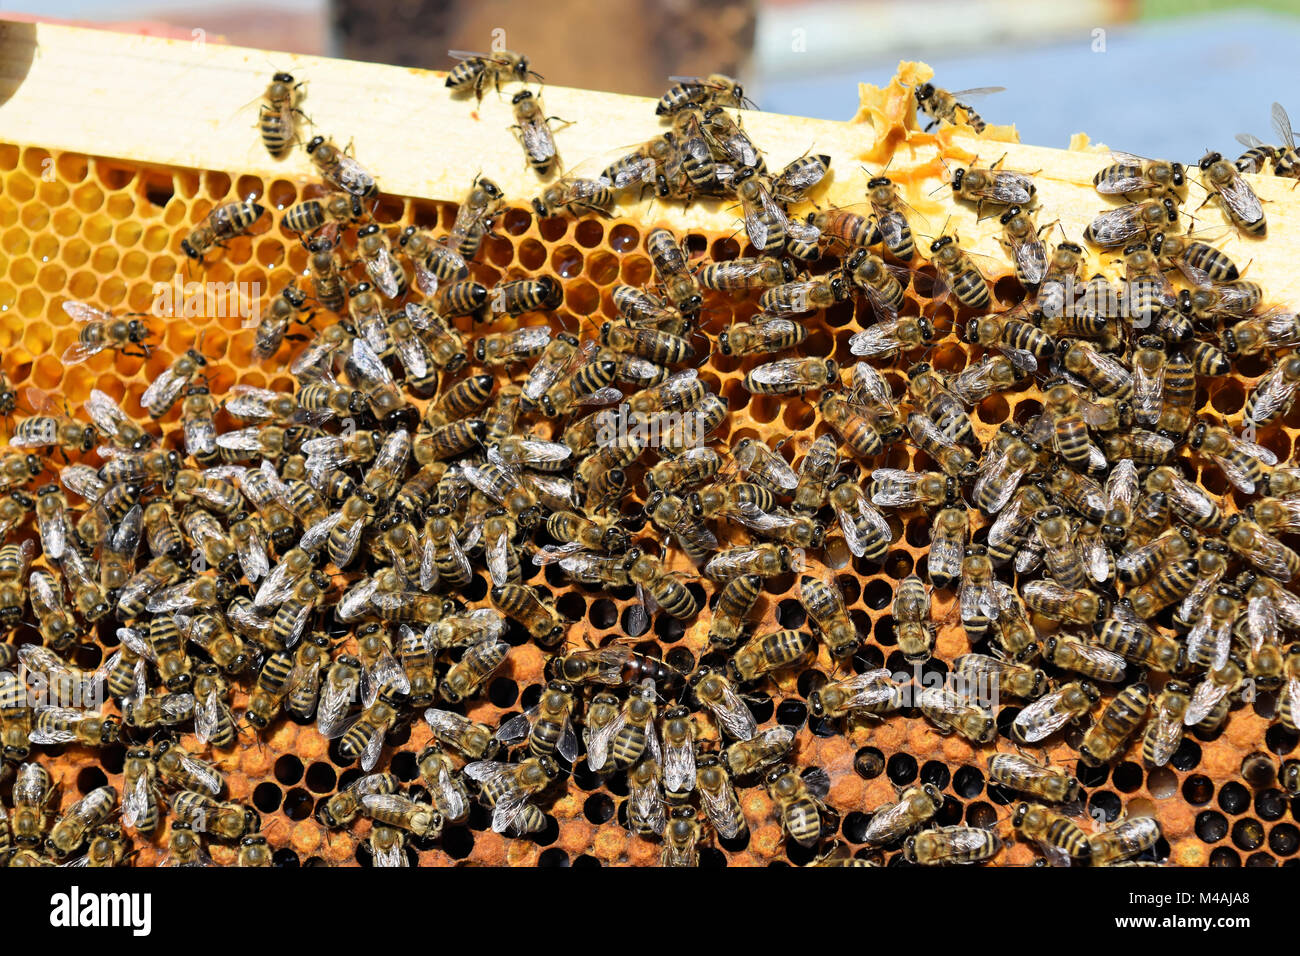 A hive frame covered with honey bees - Stock Image